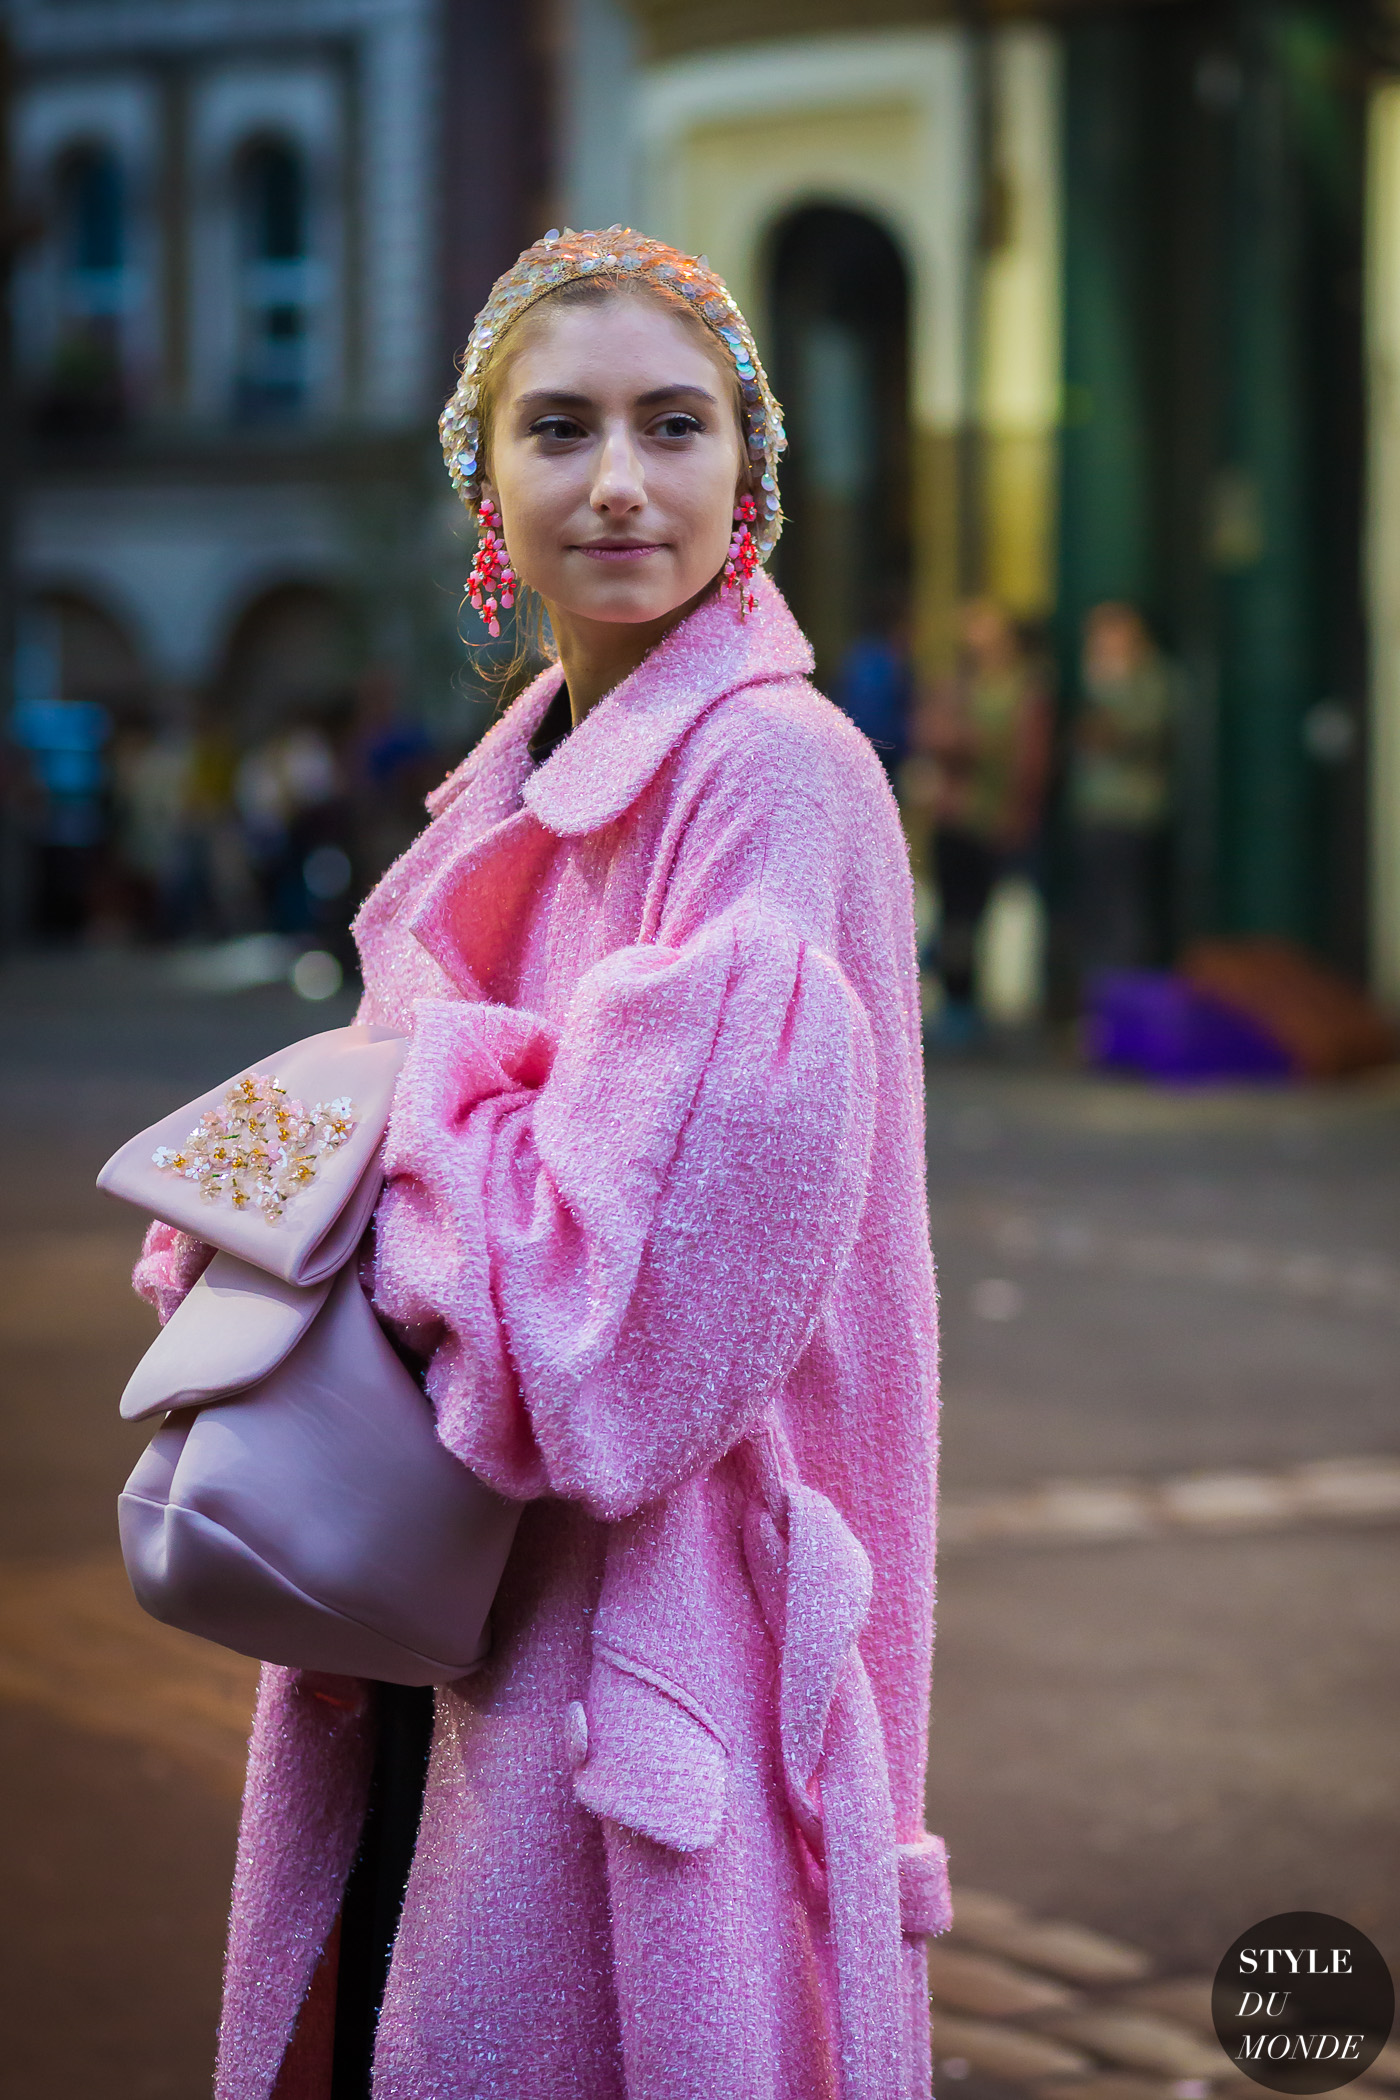 jenny-walton-by-styledumonde-street-style-fashion-photography